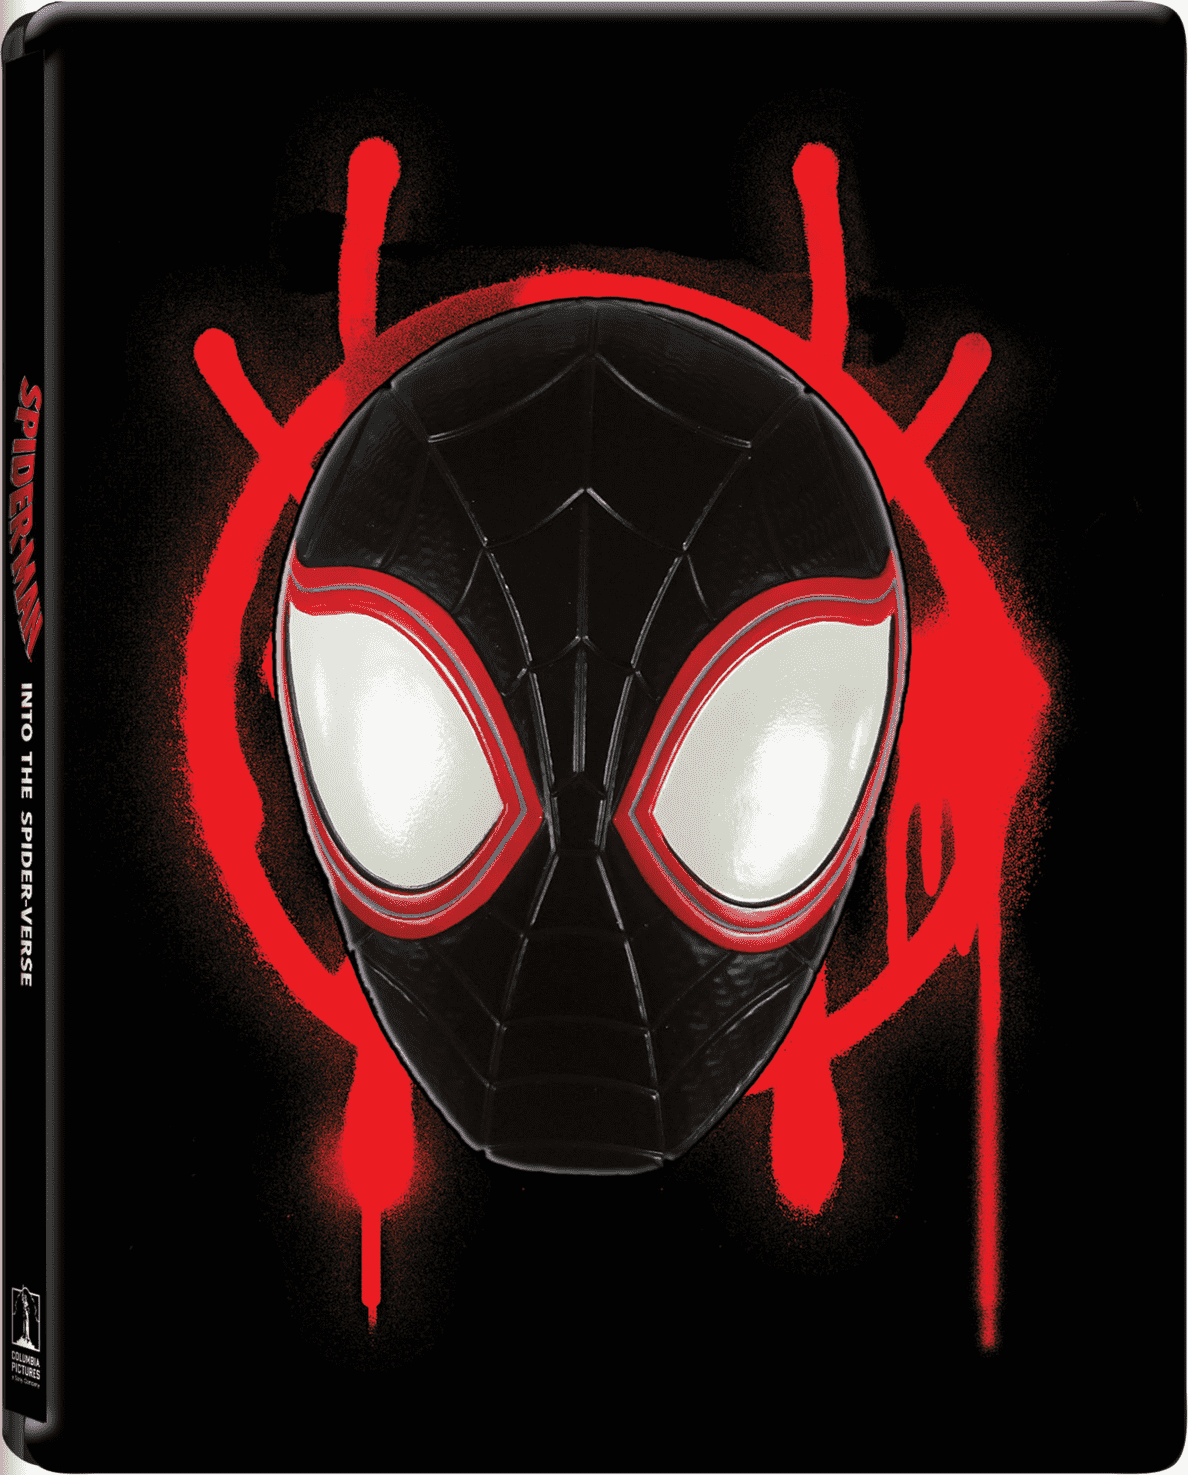 Spider-Man: A new Universe (Exklusives Steelbook) - (4K Ultra HD Blu-ray + Blu-ray)